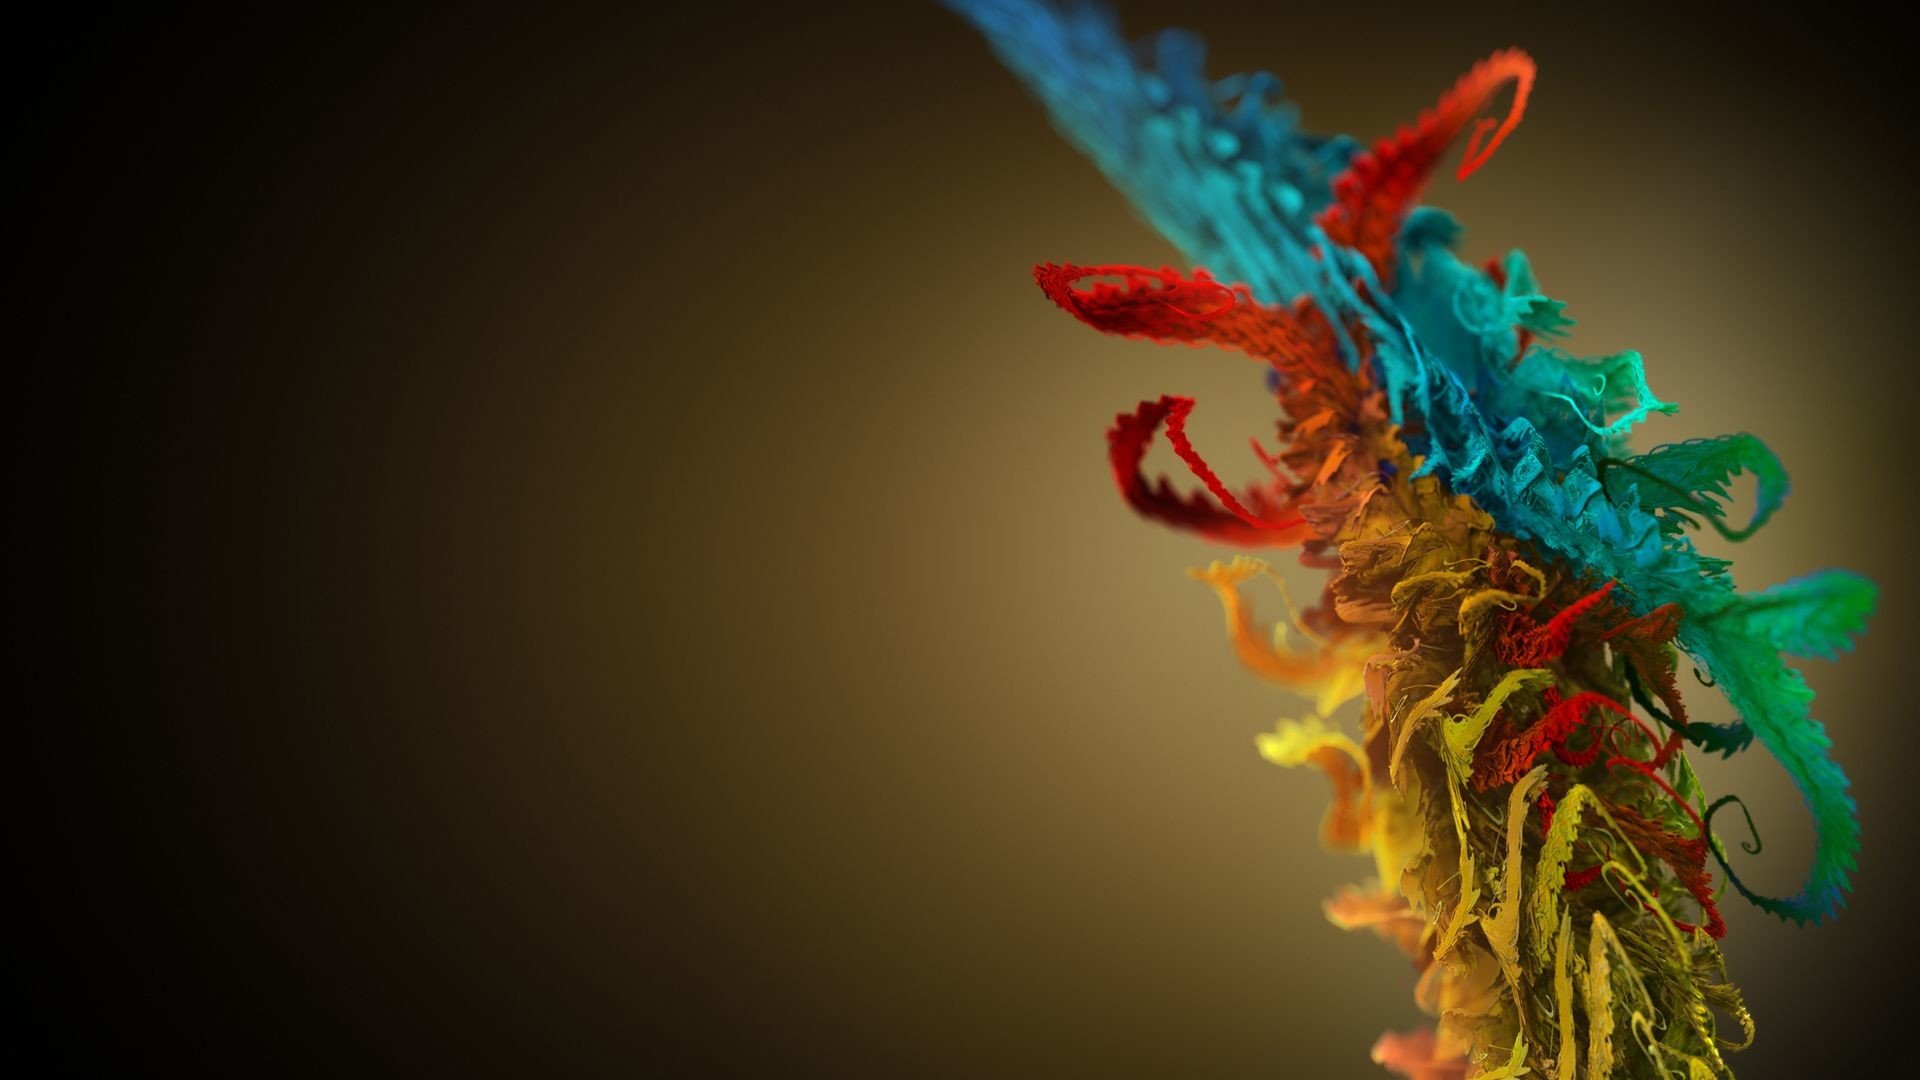 Res: 1920x1080, 3D Color Splash In The Space | HD 3D and Abstract Wallpaper Free Download  ...